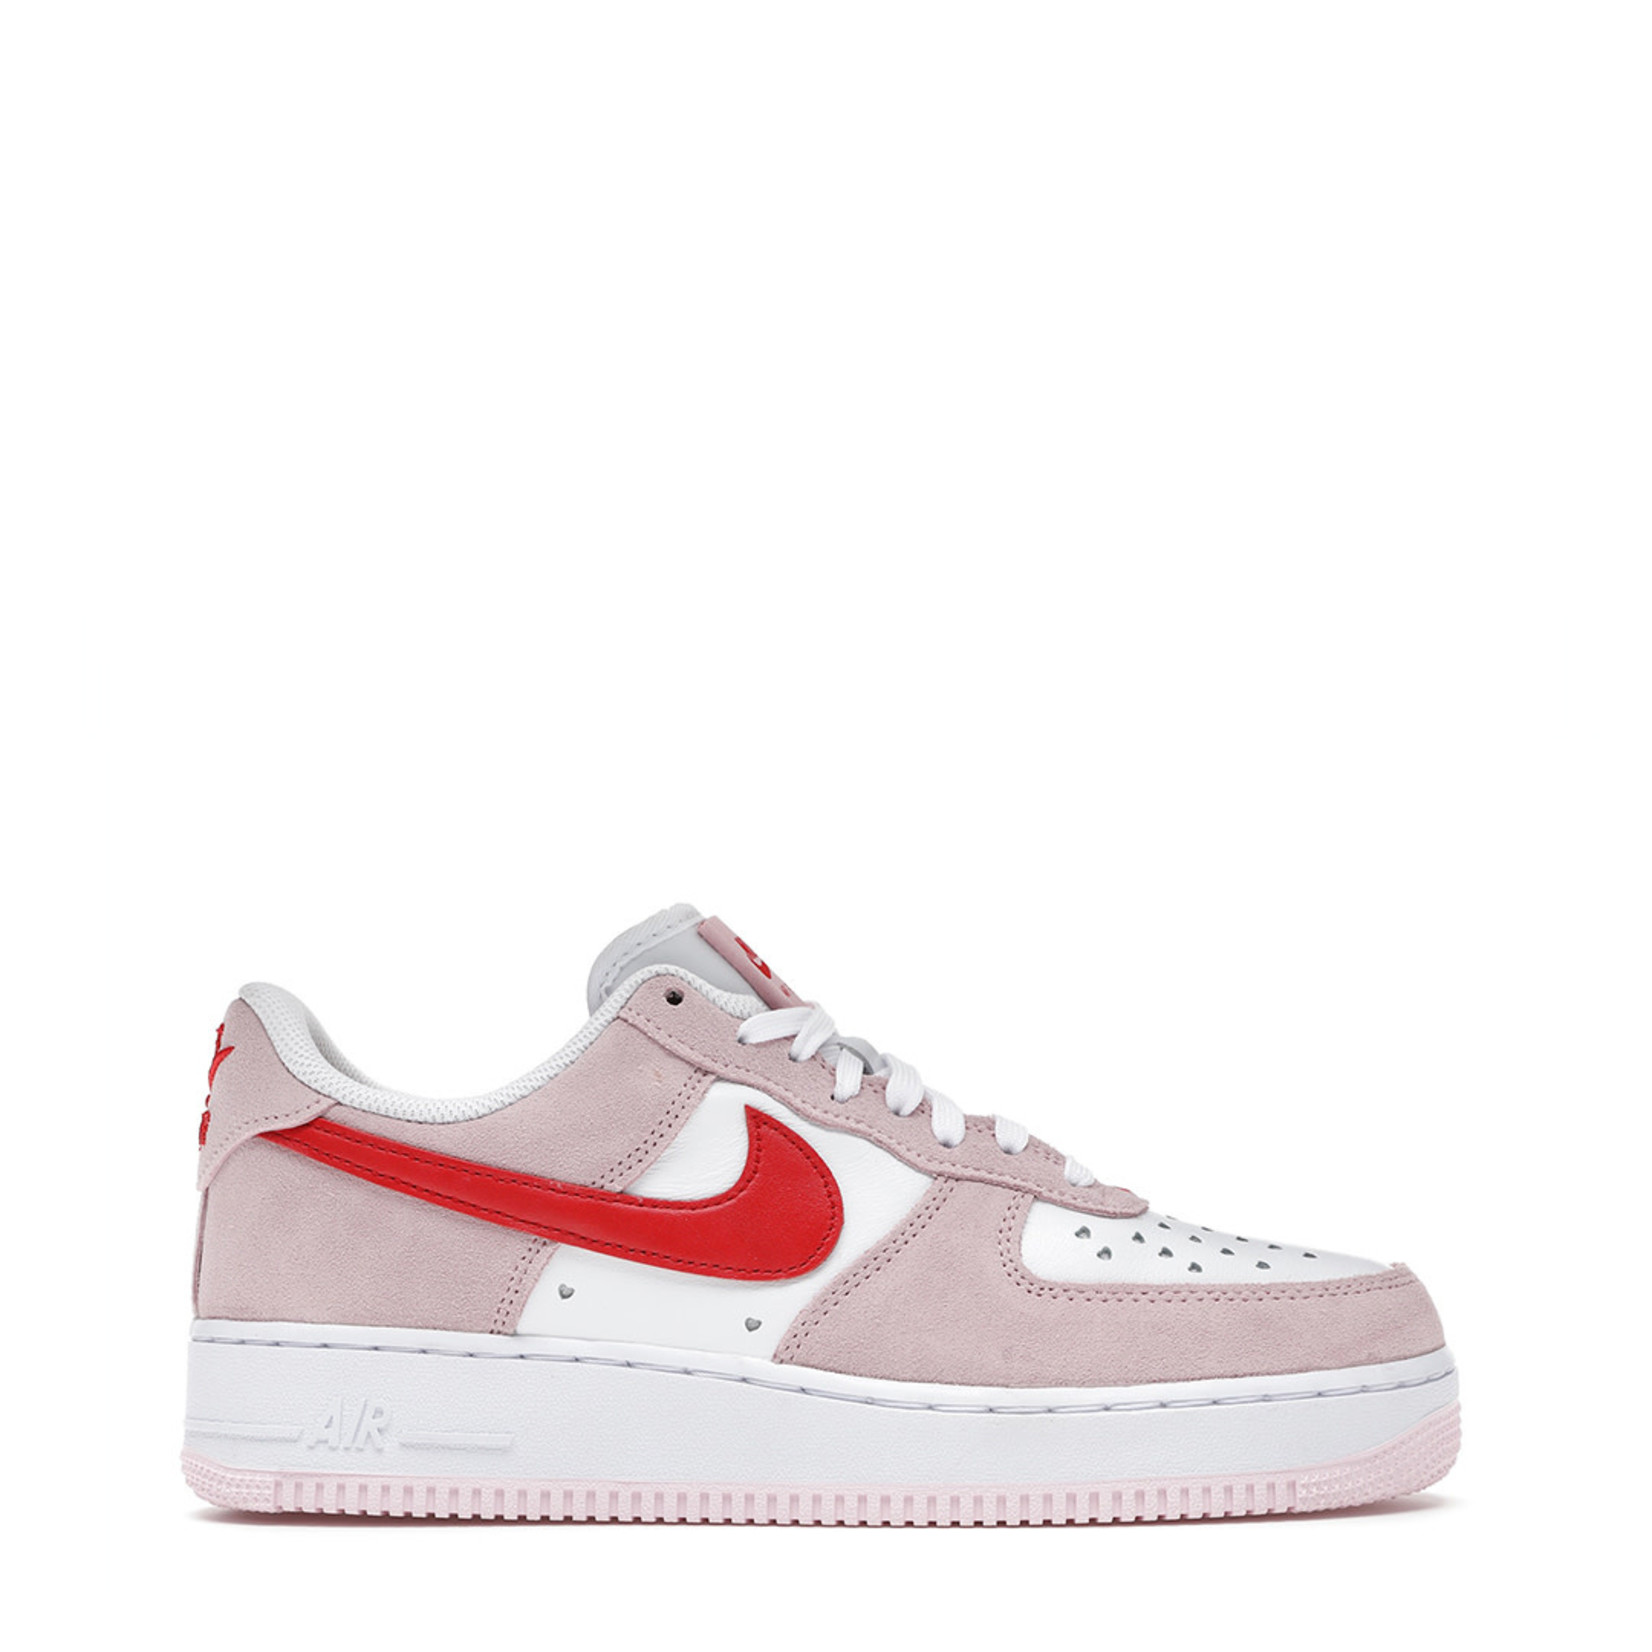 Nike Nike Air Force 1 07 QS Valentine's Day Love Letter  (C)